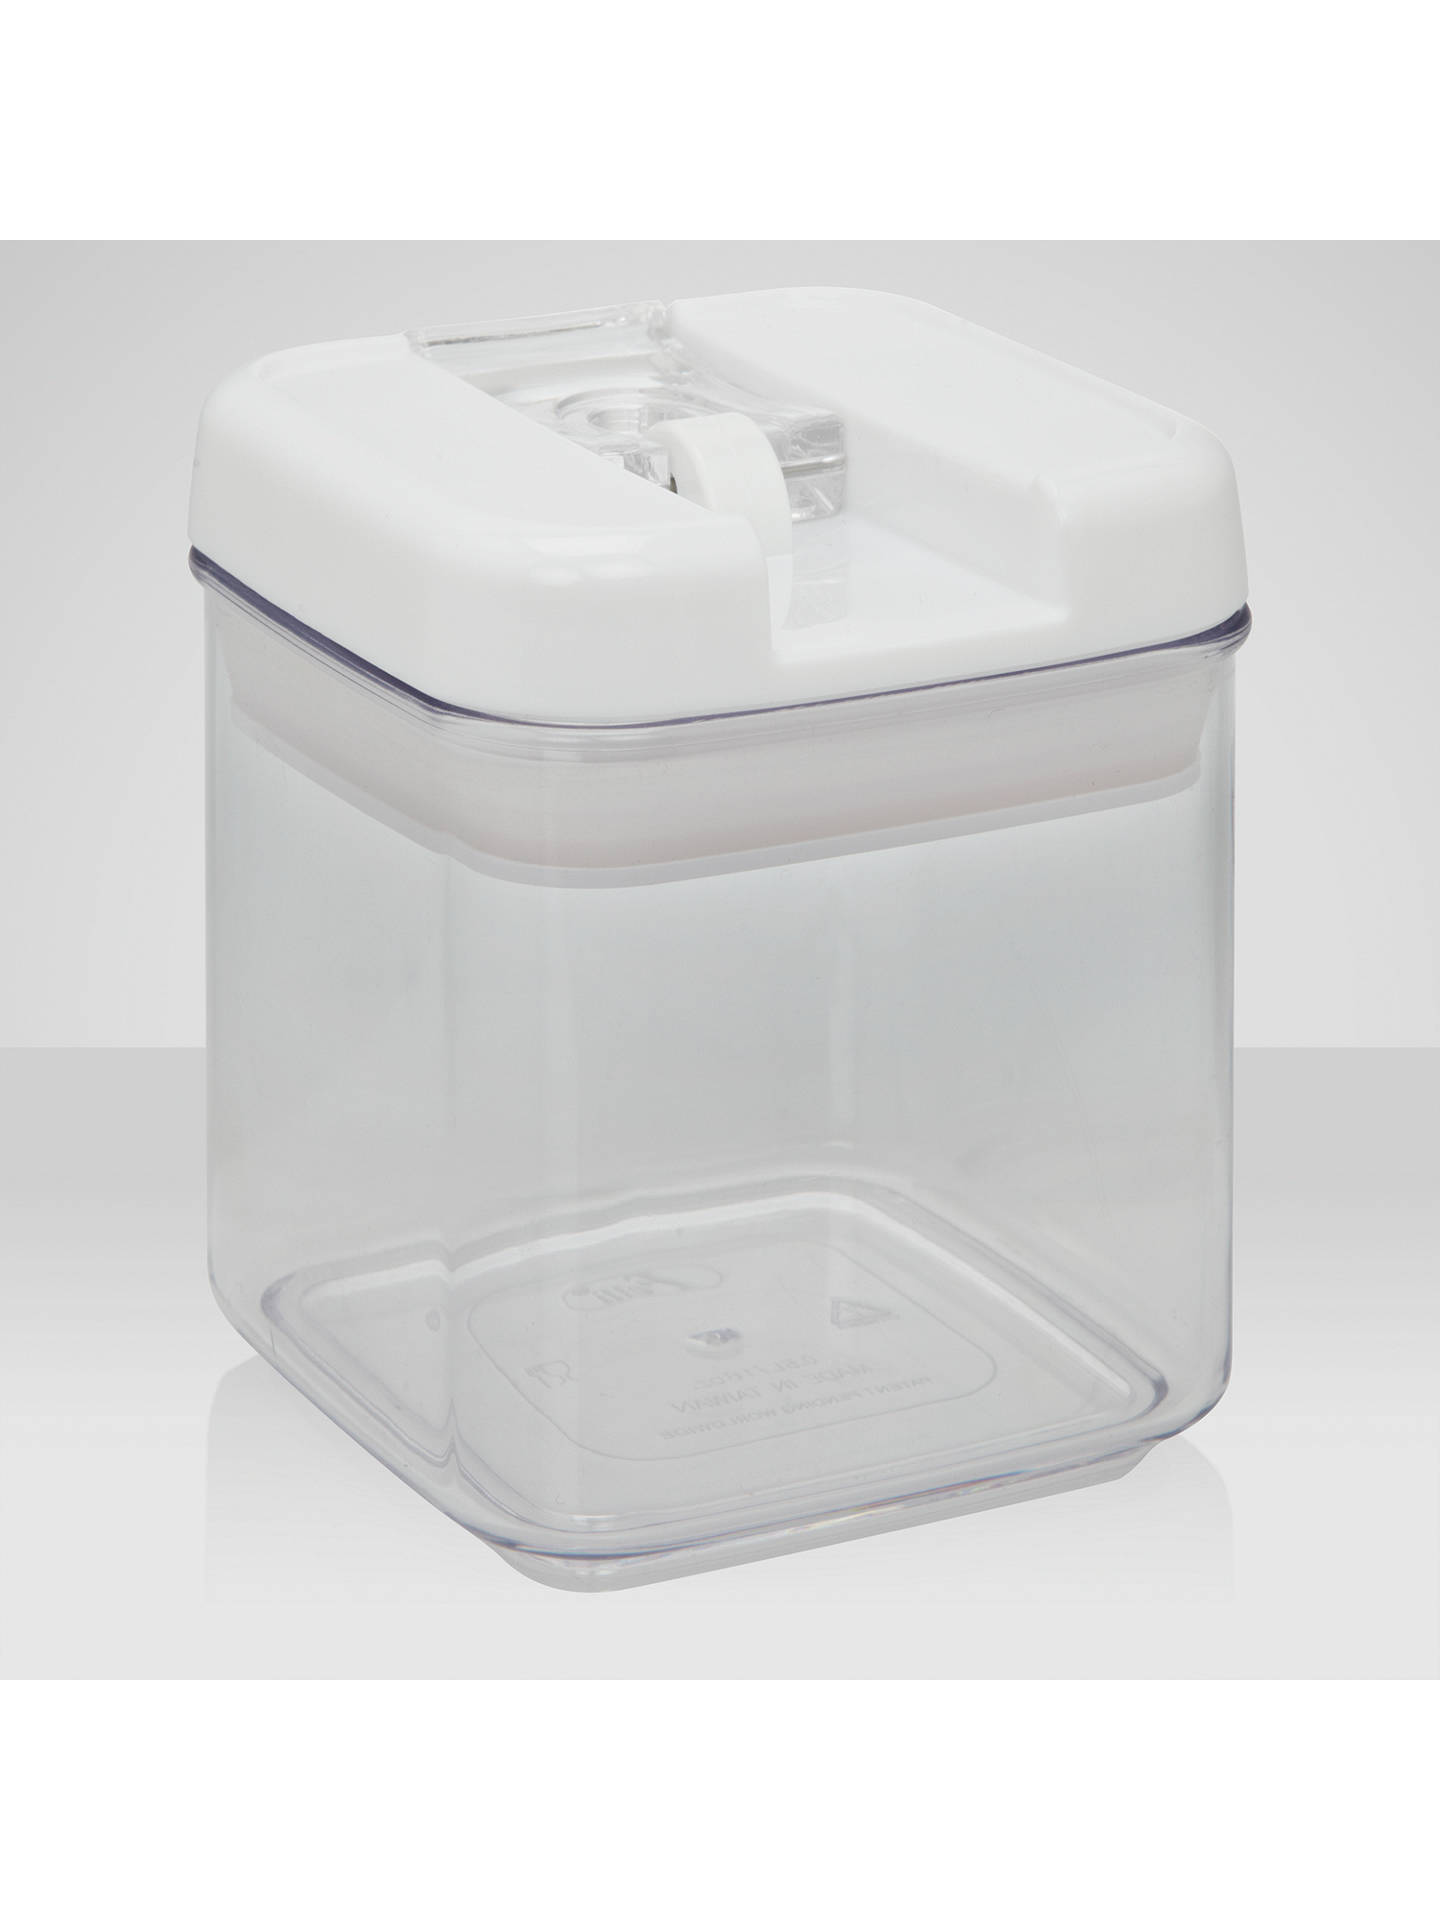 BuyJohn Lewis & Partners Flip-Tite Square Storage Container, 0.5L Online at johnlewis.com